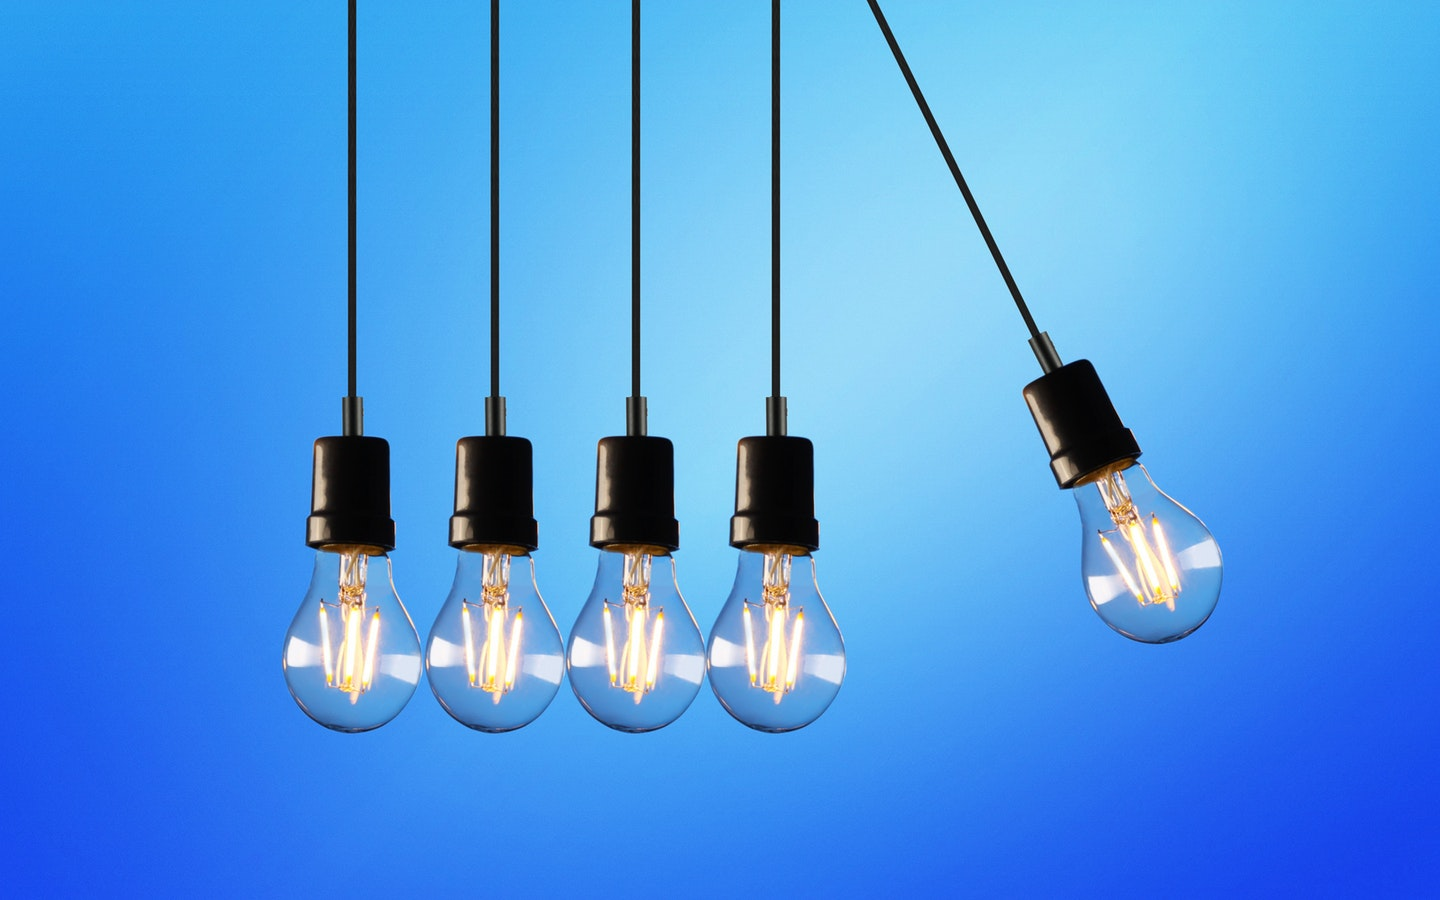 Lights with a cooler tone are more suitable in a working environment